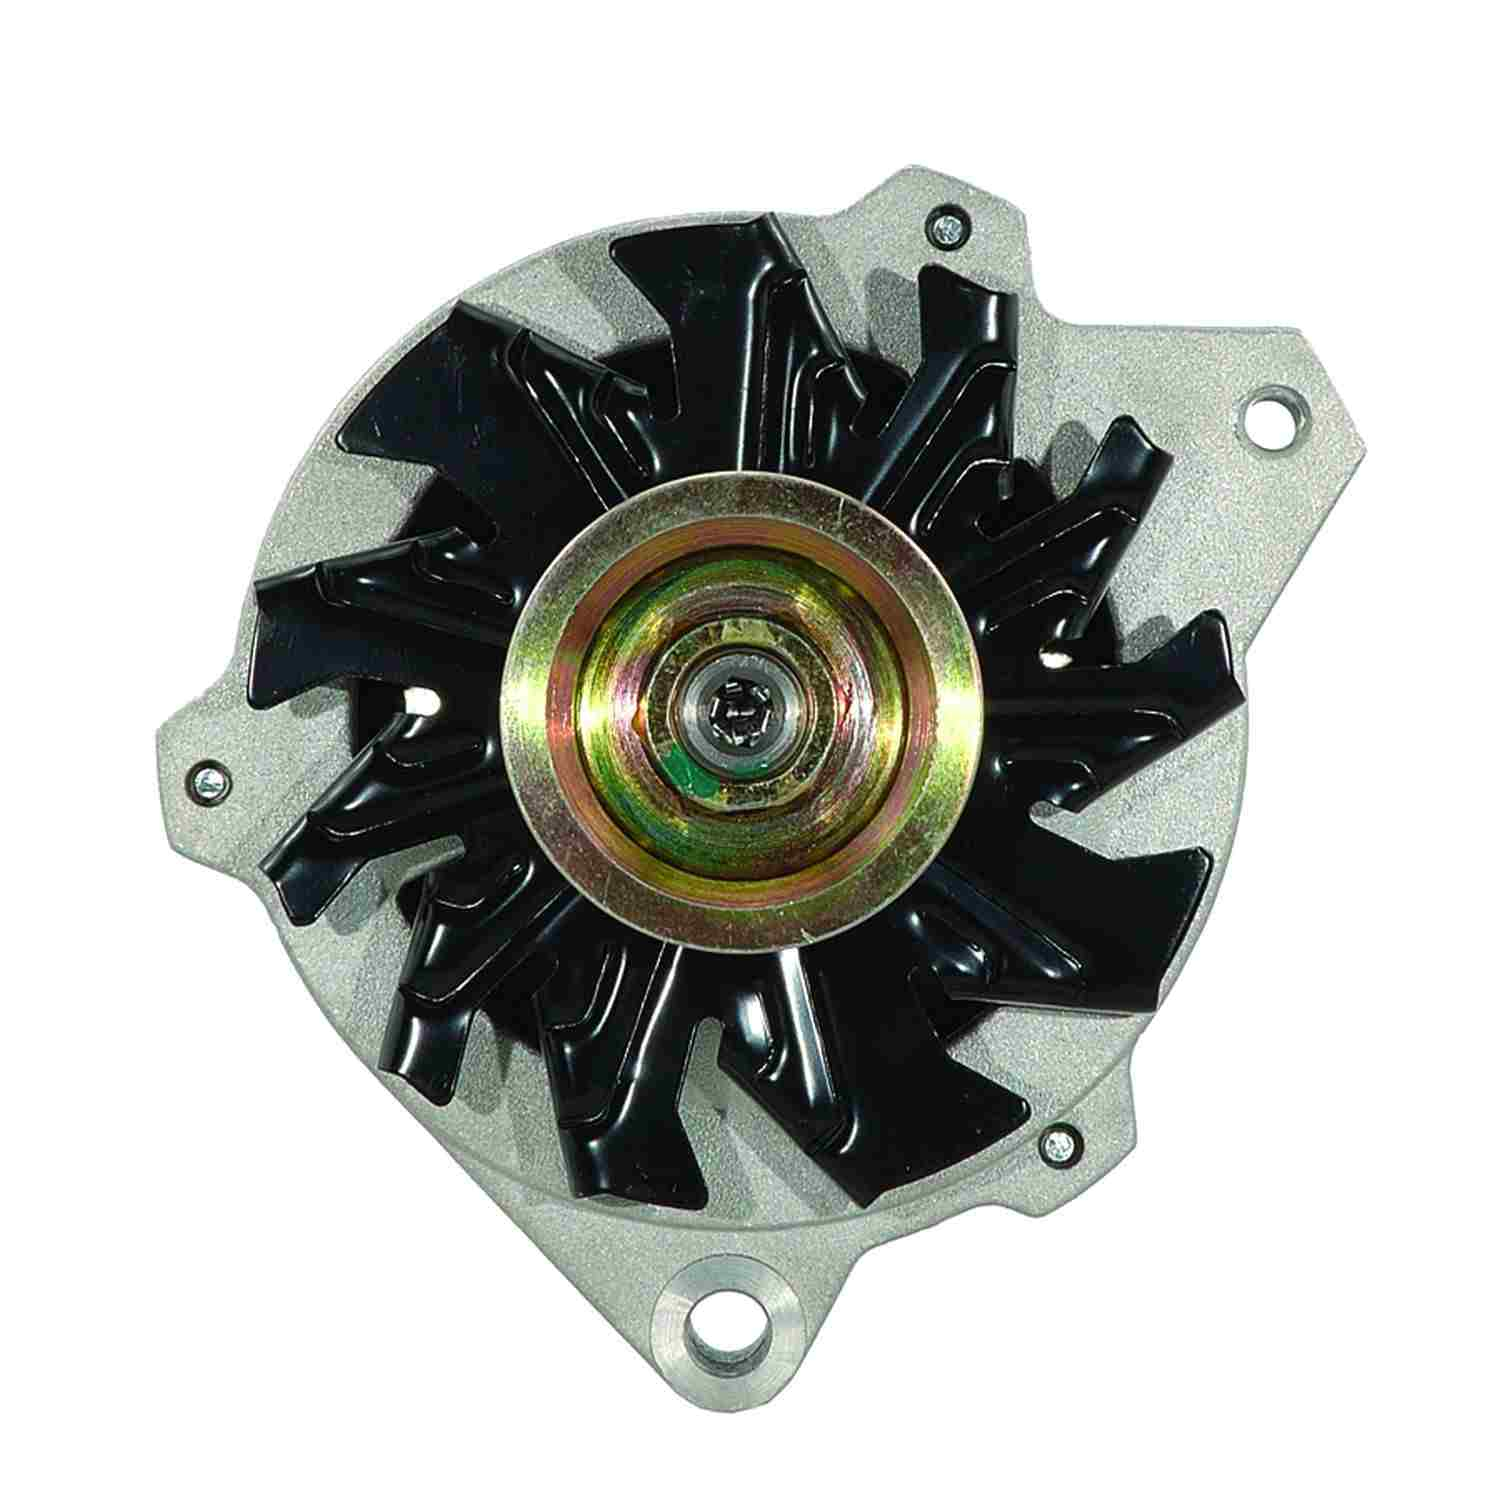 ACDELCO GOLD/PROFESSIONAL - Alternator - DCC 335-1028